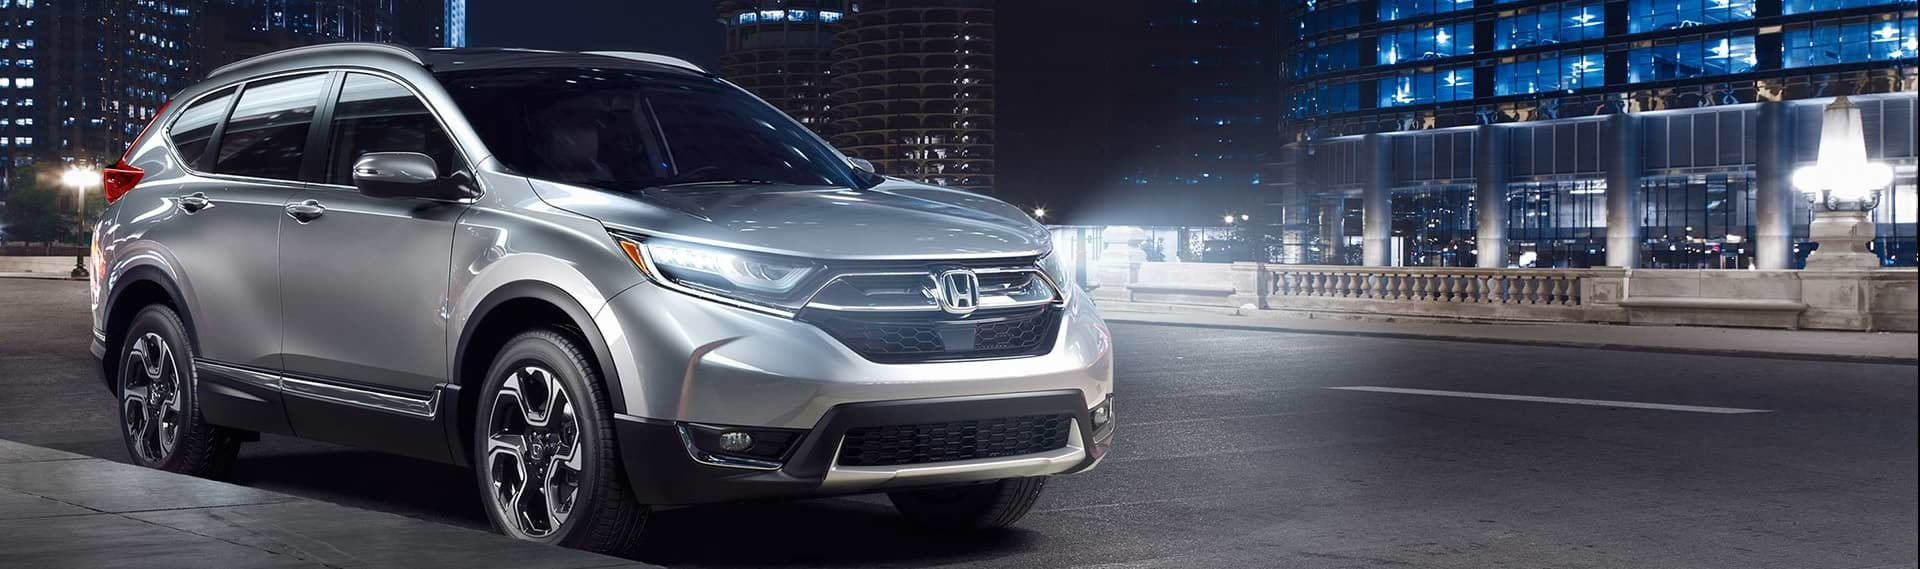 2018 Honda CR-V at Pohanka Honda of Salisbury